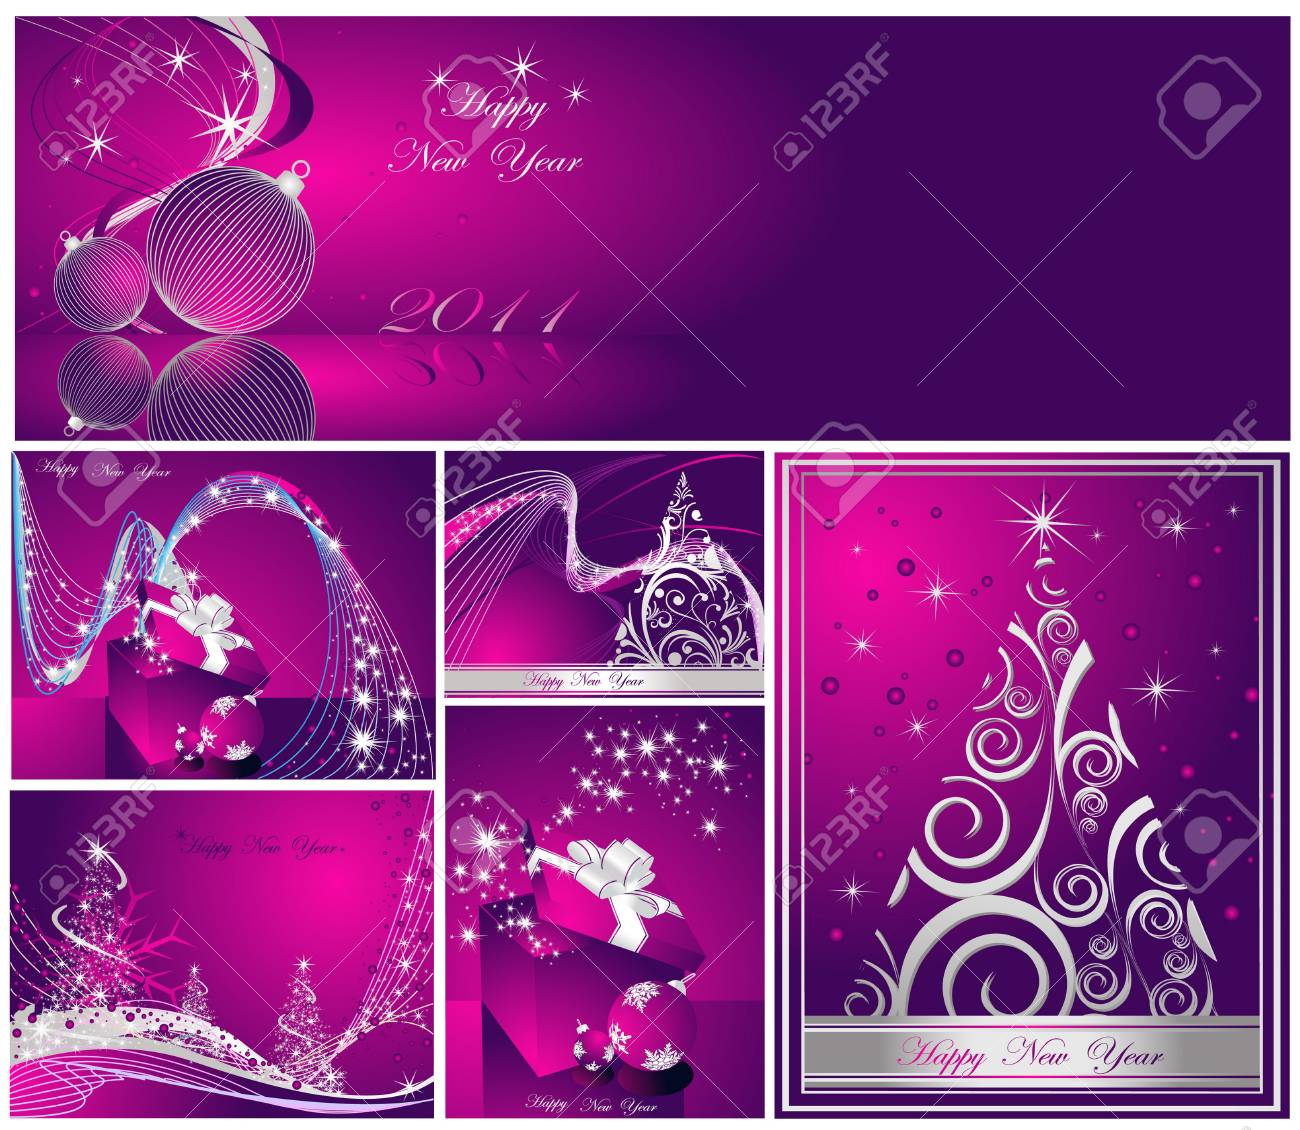 Merry Christmas and Happy New Year collection Stock Vector - 8310543